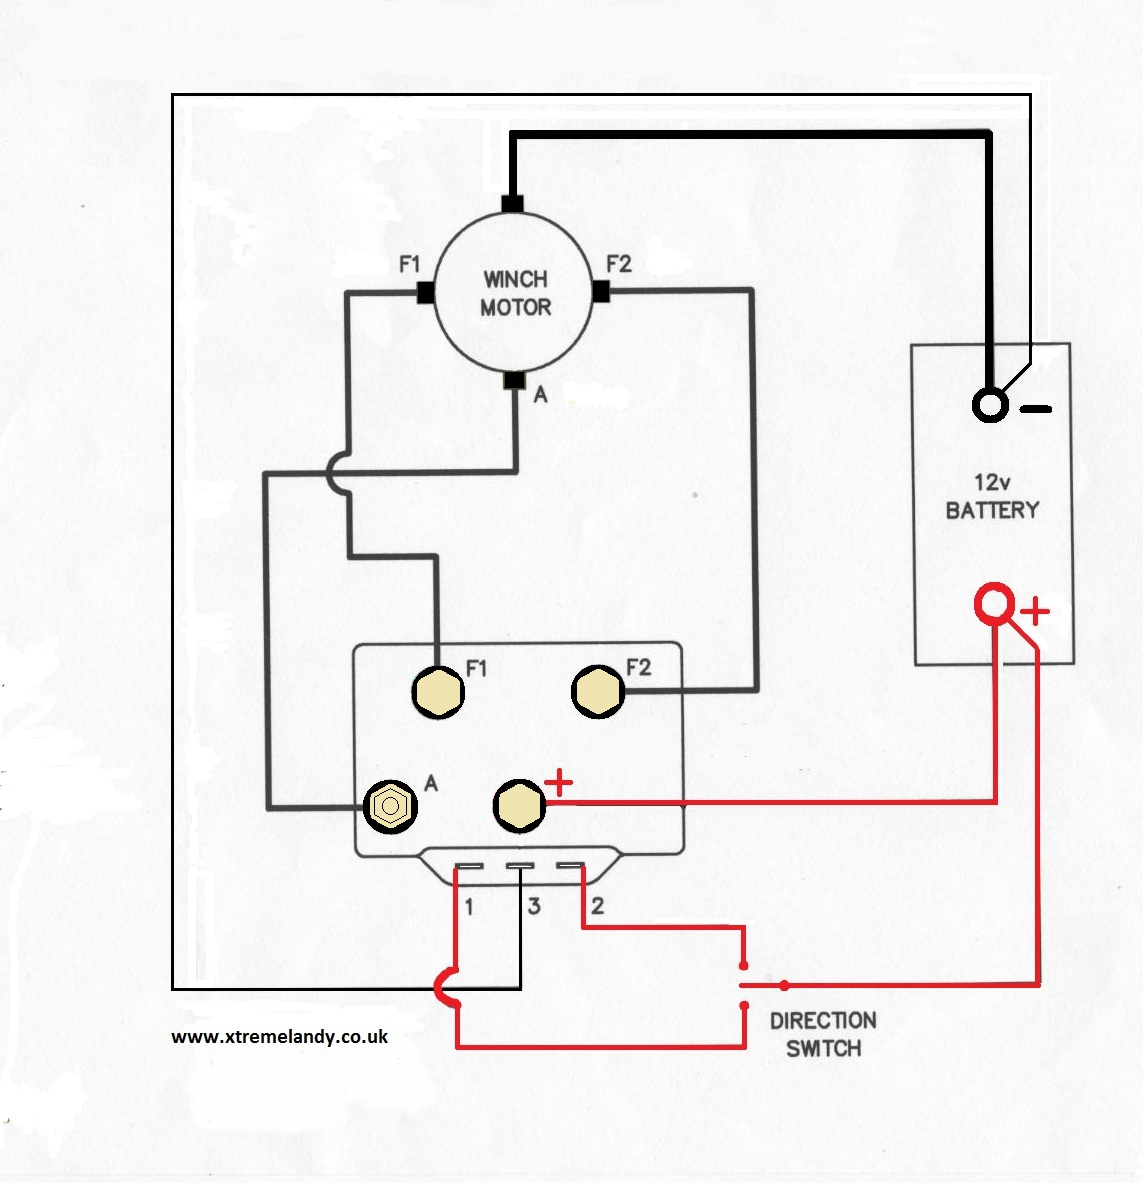 albright wiring diagram image 300tdi wiring diagram ford wiring schematic \u2022 free wiring diagrams land rover series 3 wiring loom diagram at fashall.co